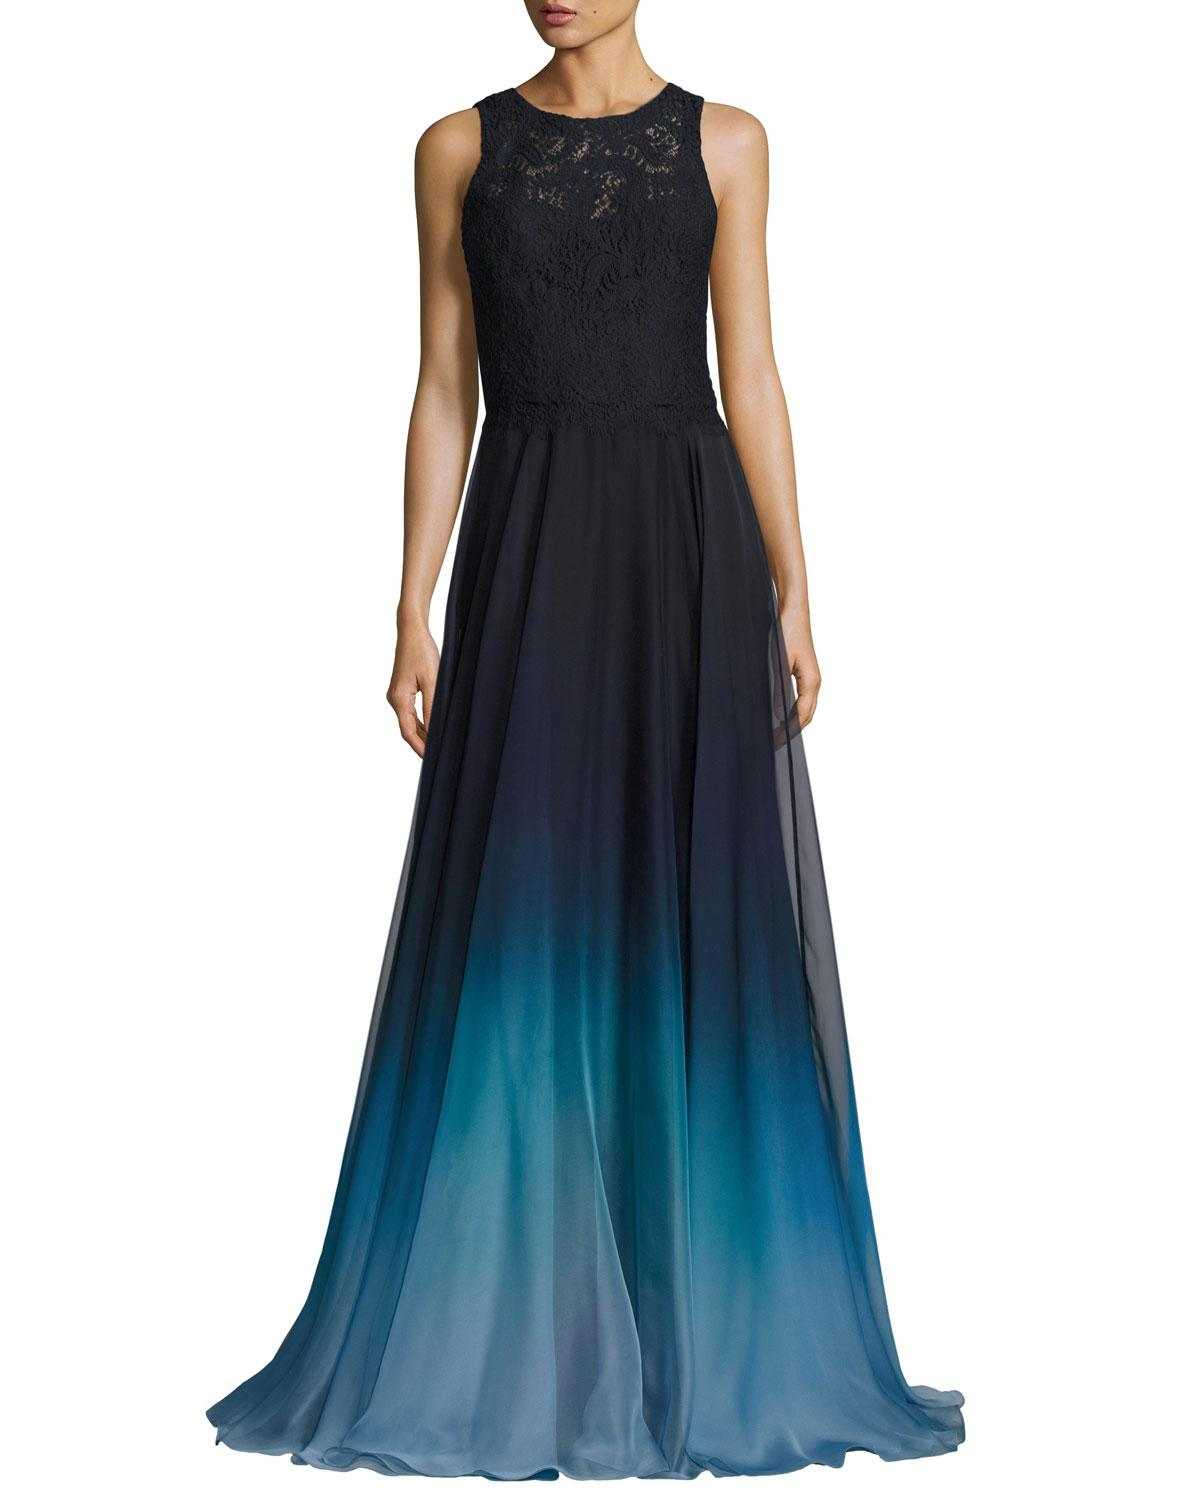 Neiman Marcus Designer Evening Dresses